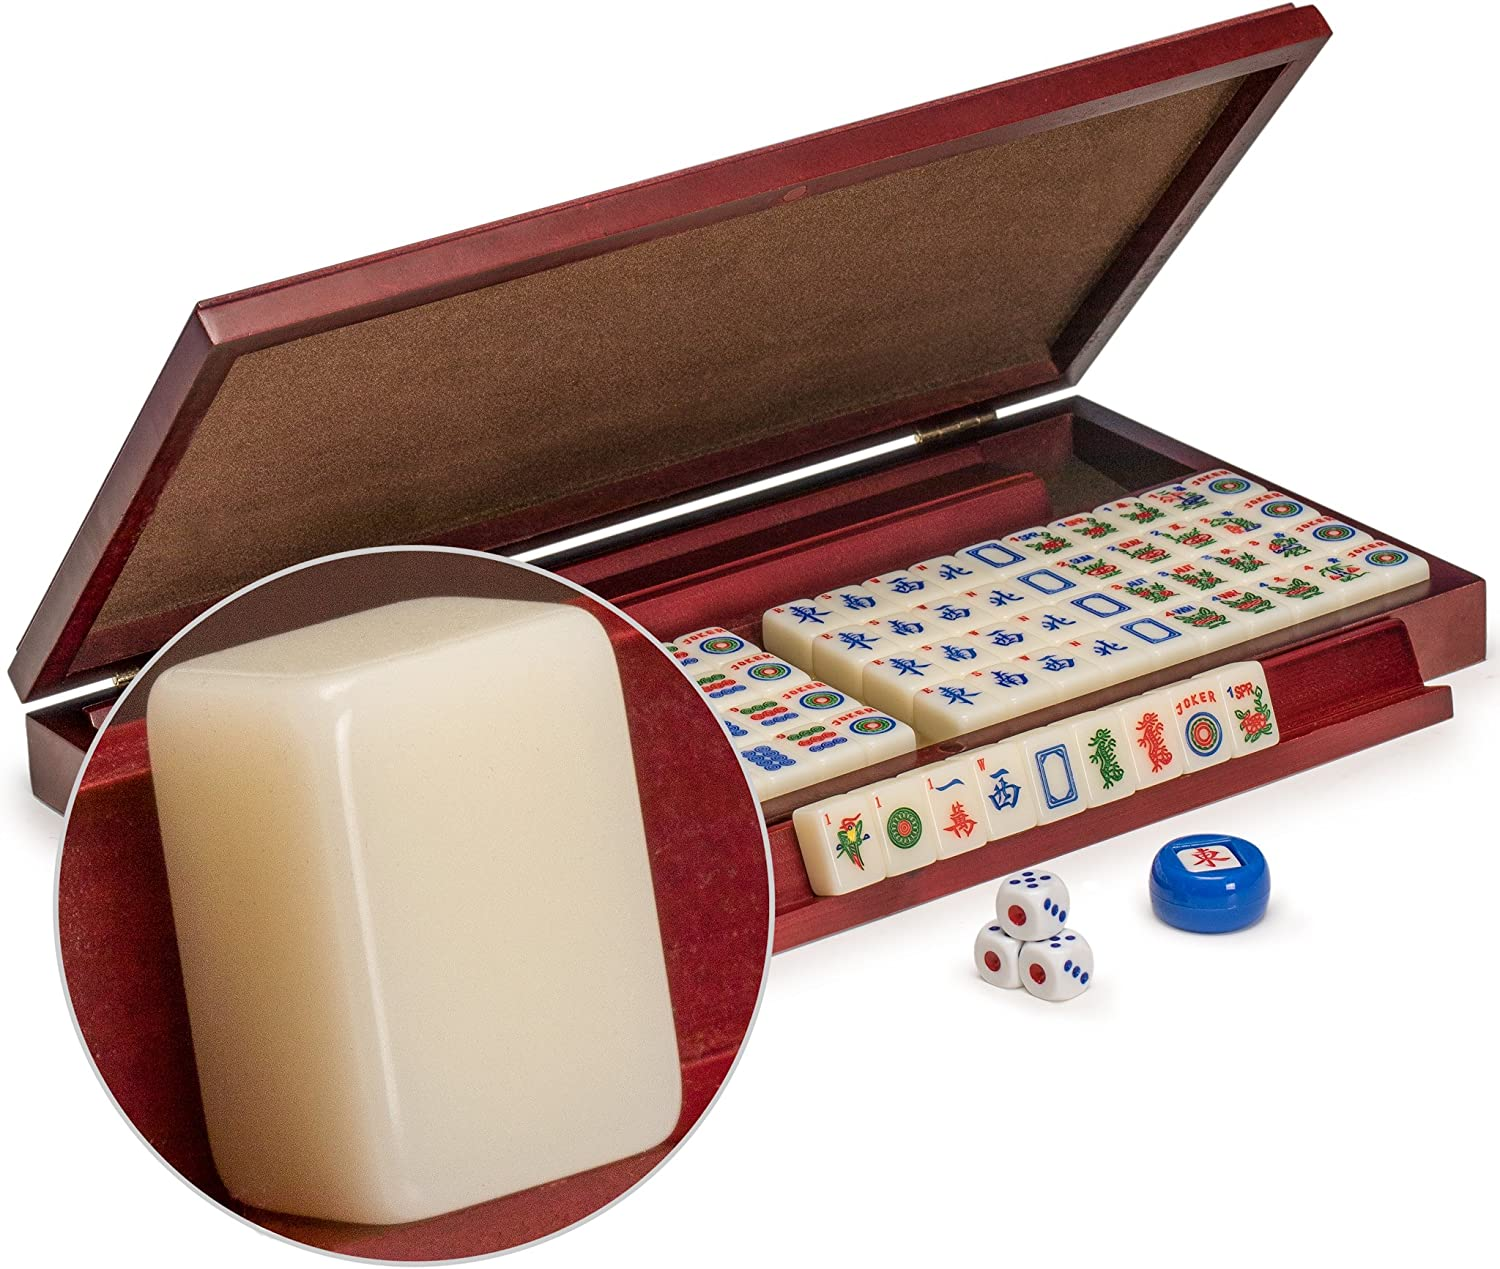 Yellow Mountain Imports American Mahjong Set, Mini Classic Tiles with Portable Vinyl Case  Four Wooden Racks, Dice, & Wind Indicator